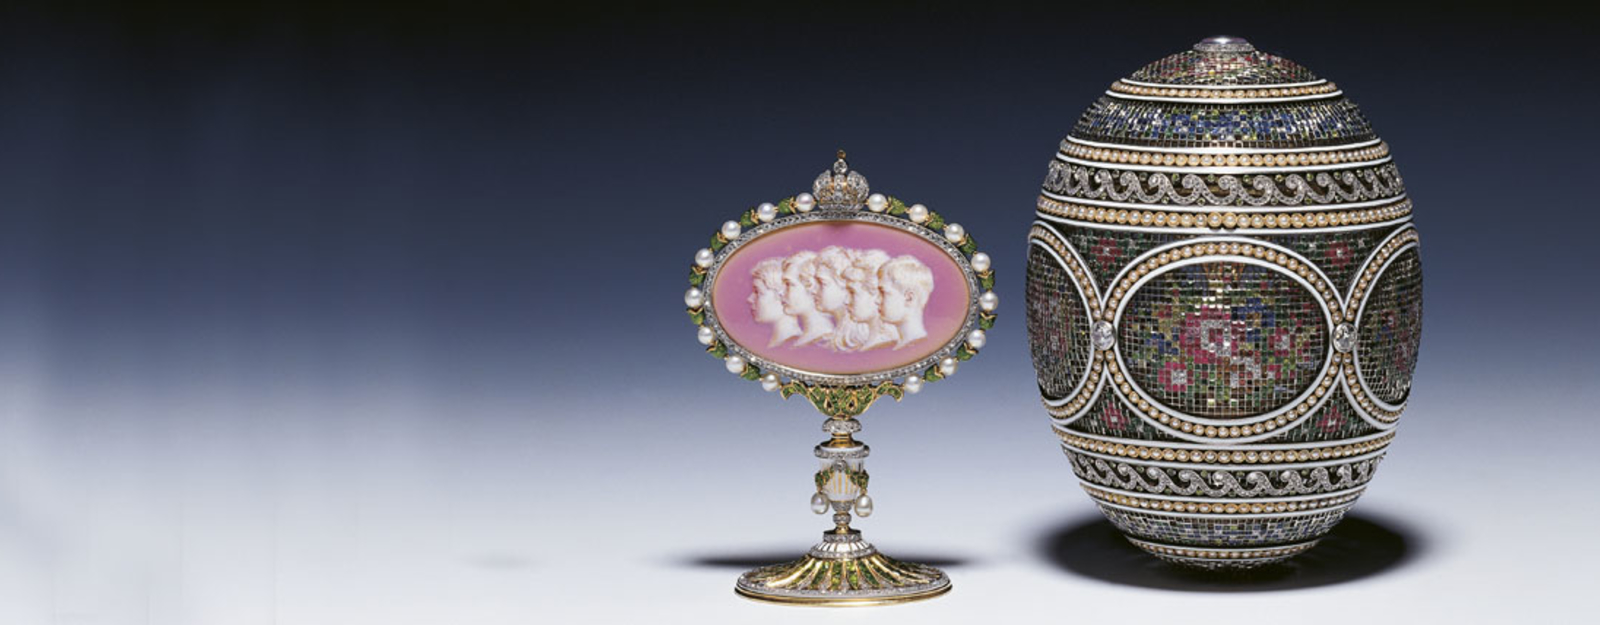 View of Fabergé's Mosaic Egg and Surprise